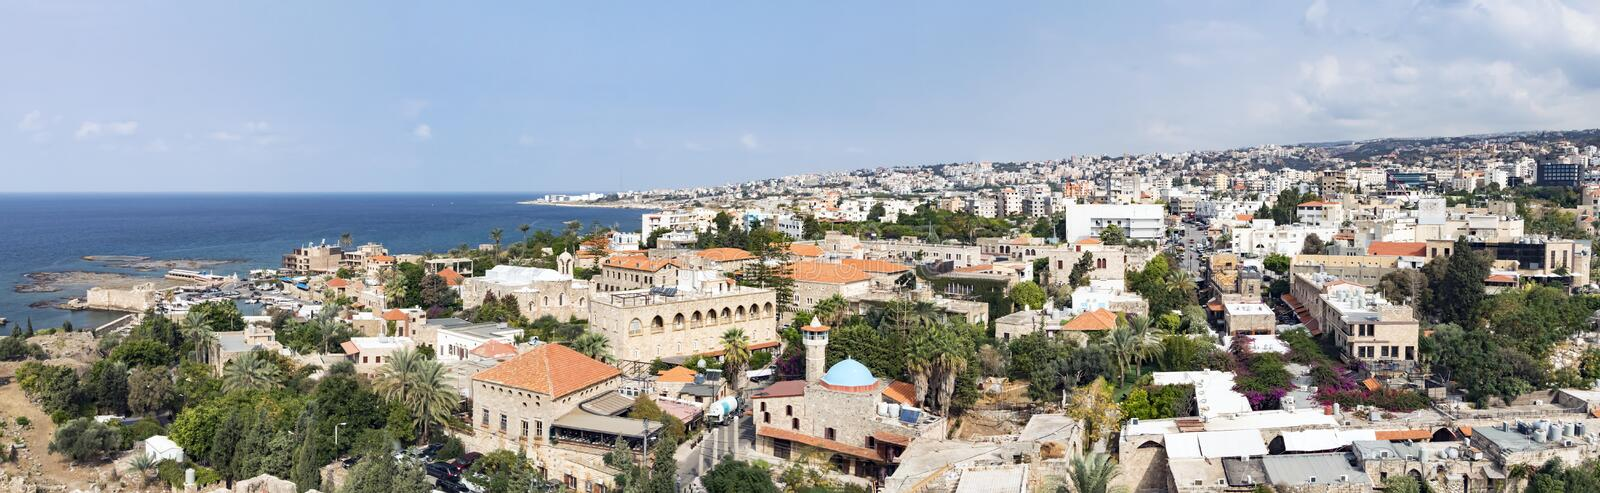 Byblos Lebanon - Panoramic view of the historic old buildings stock images